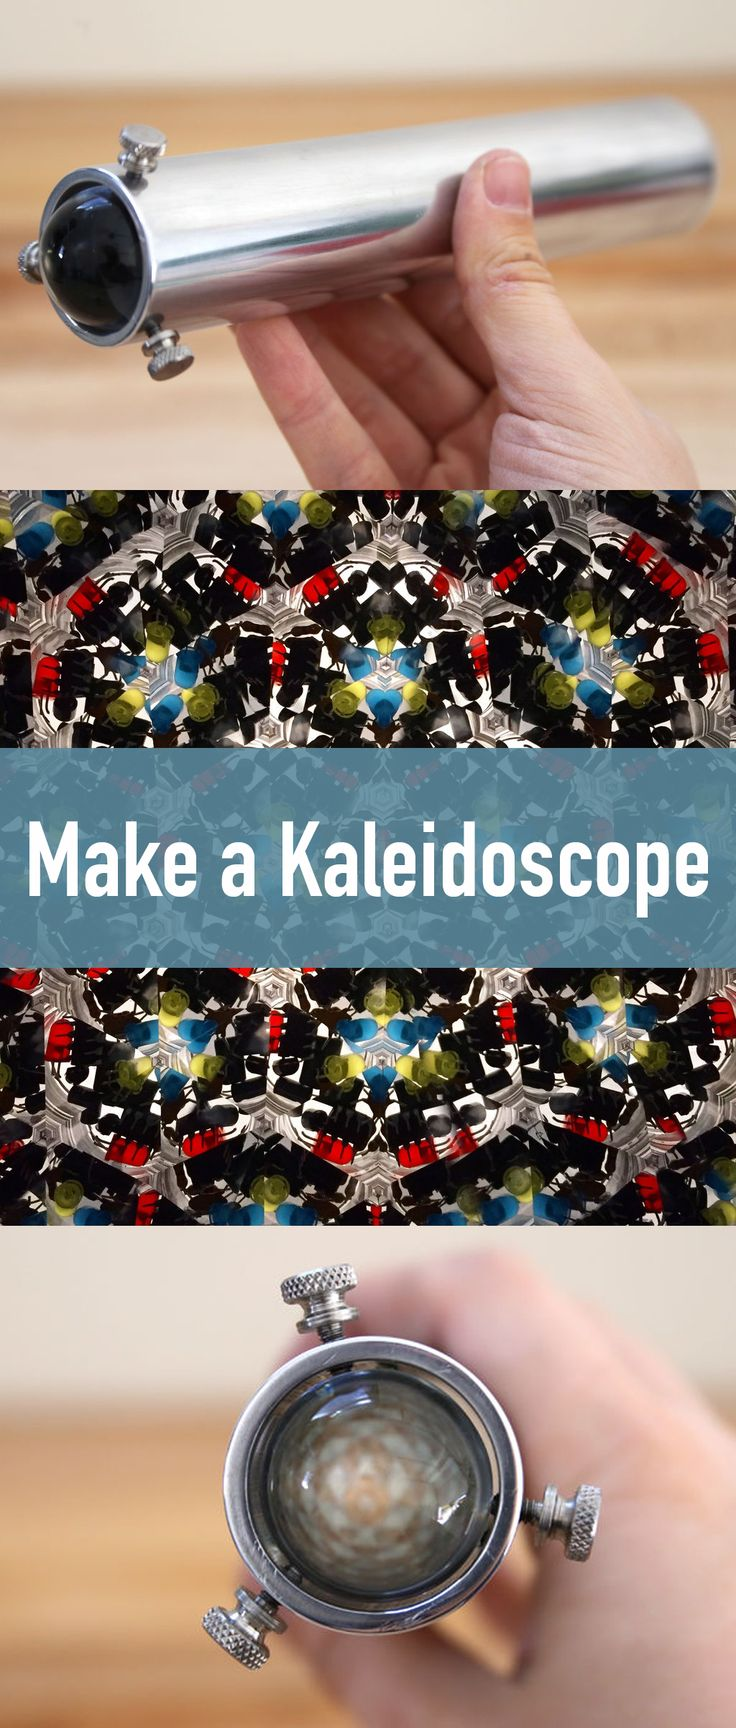 How to make a teleidoscope, which is basically a special type of kaleidoscope with a lens on the end.